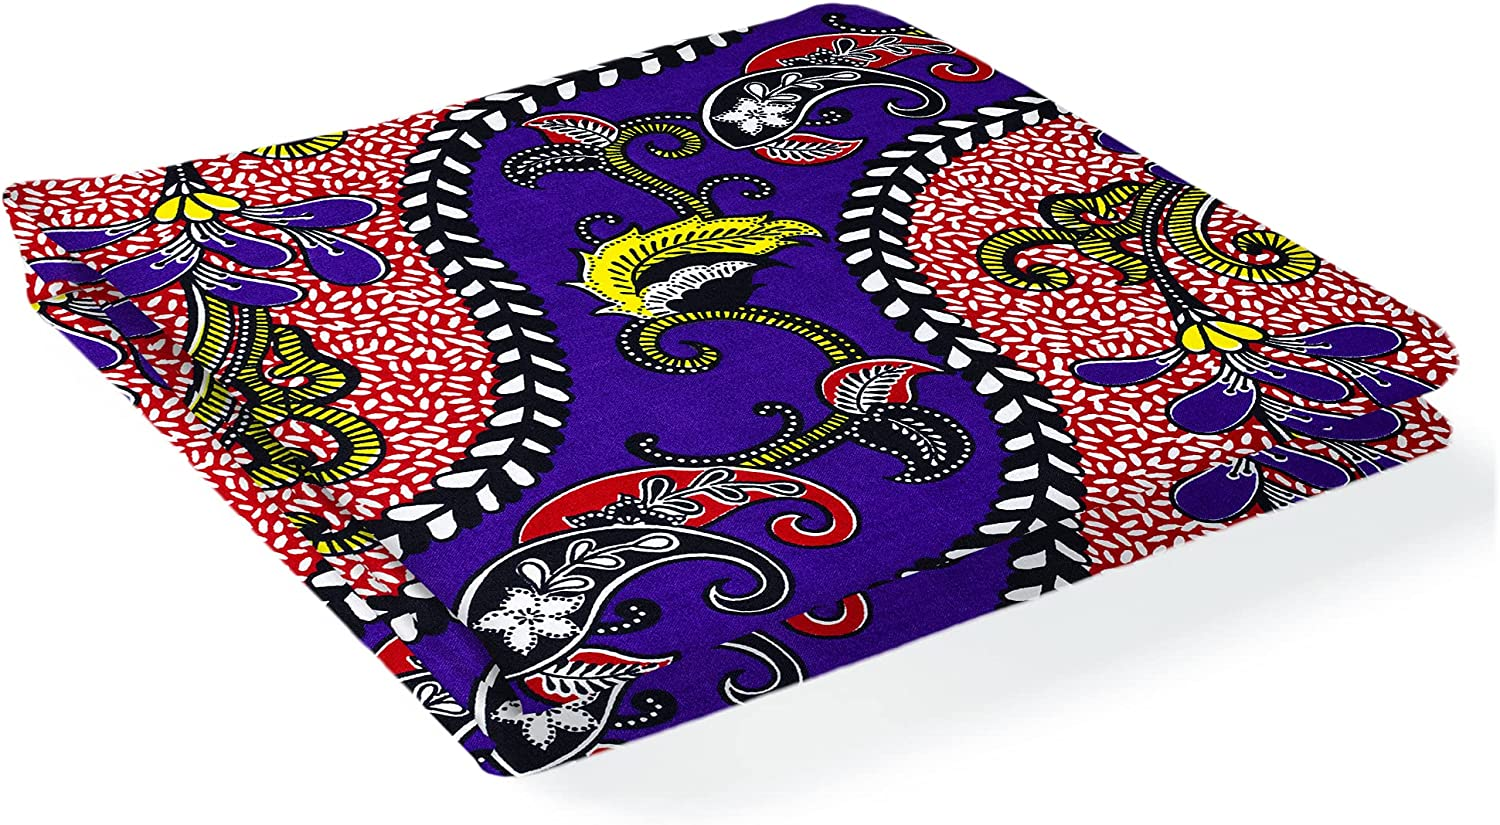 Ratti Japan's largest assortment - Premium Purple Max 70% OFF Wax Fabric Italy 100% in Tradition Made